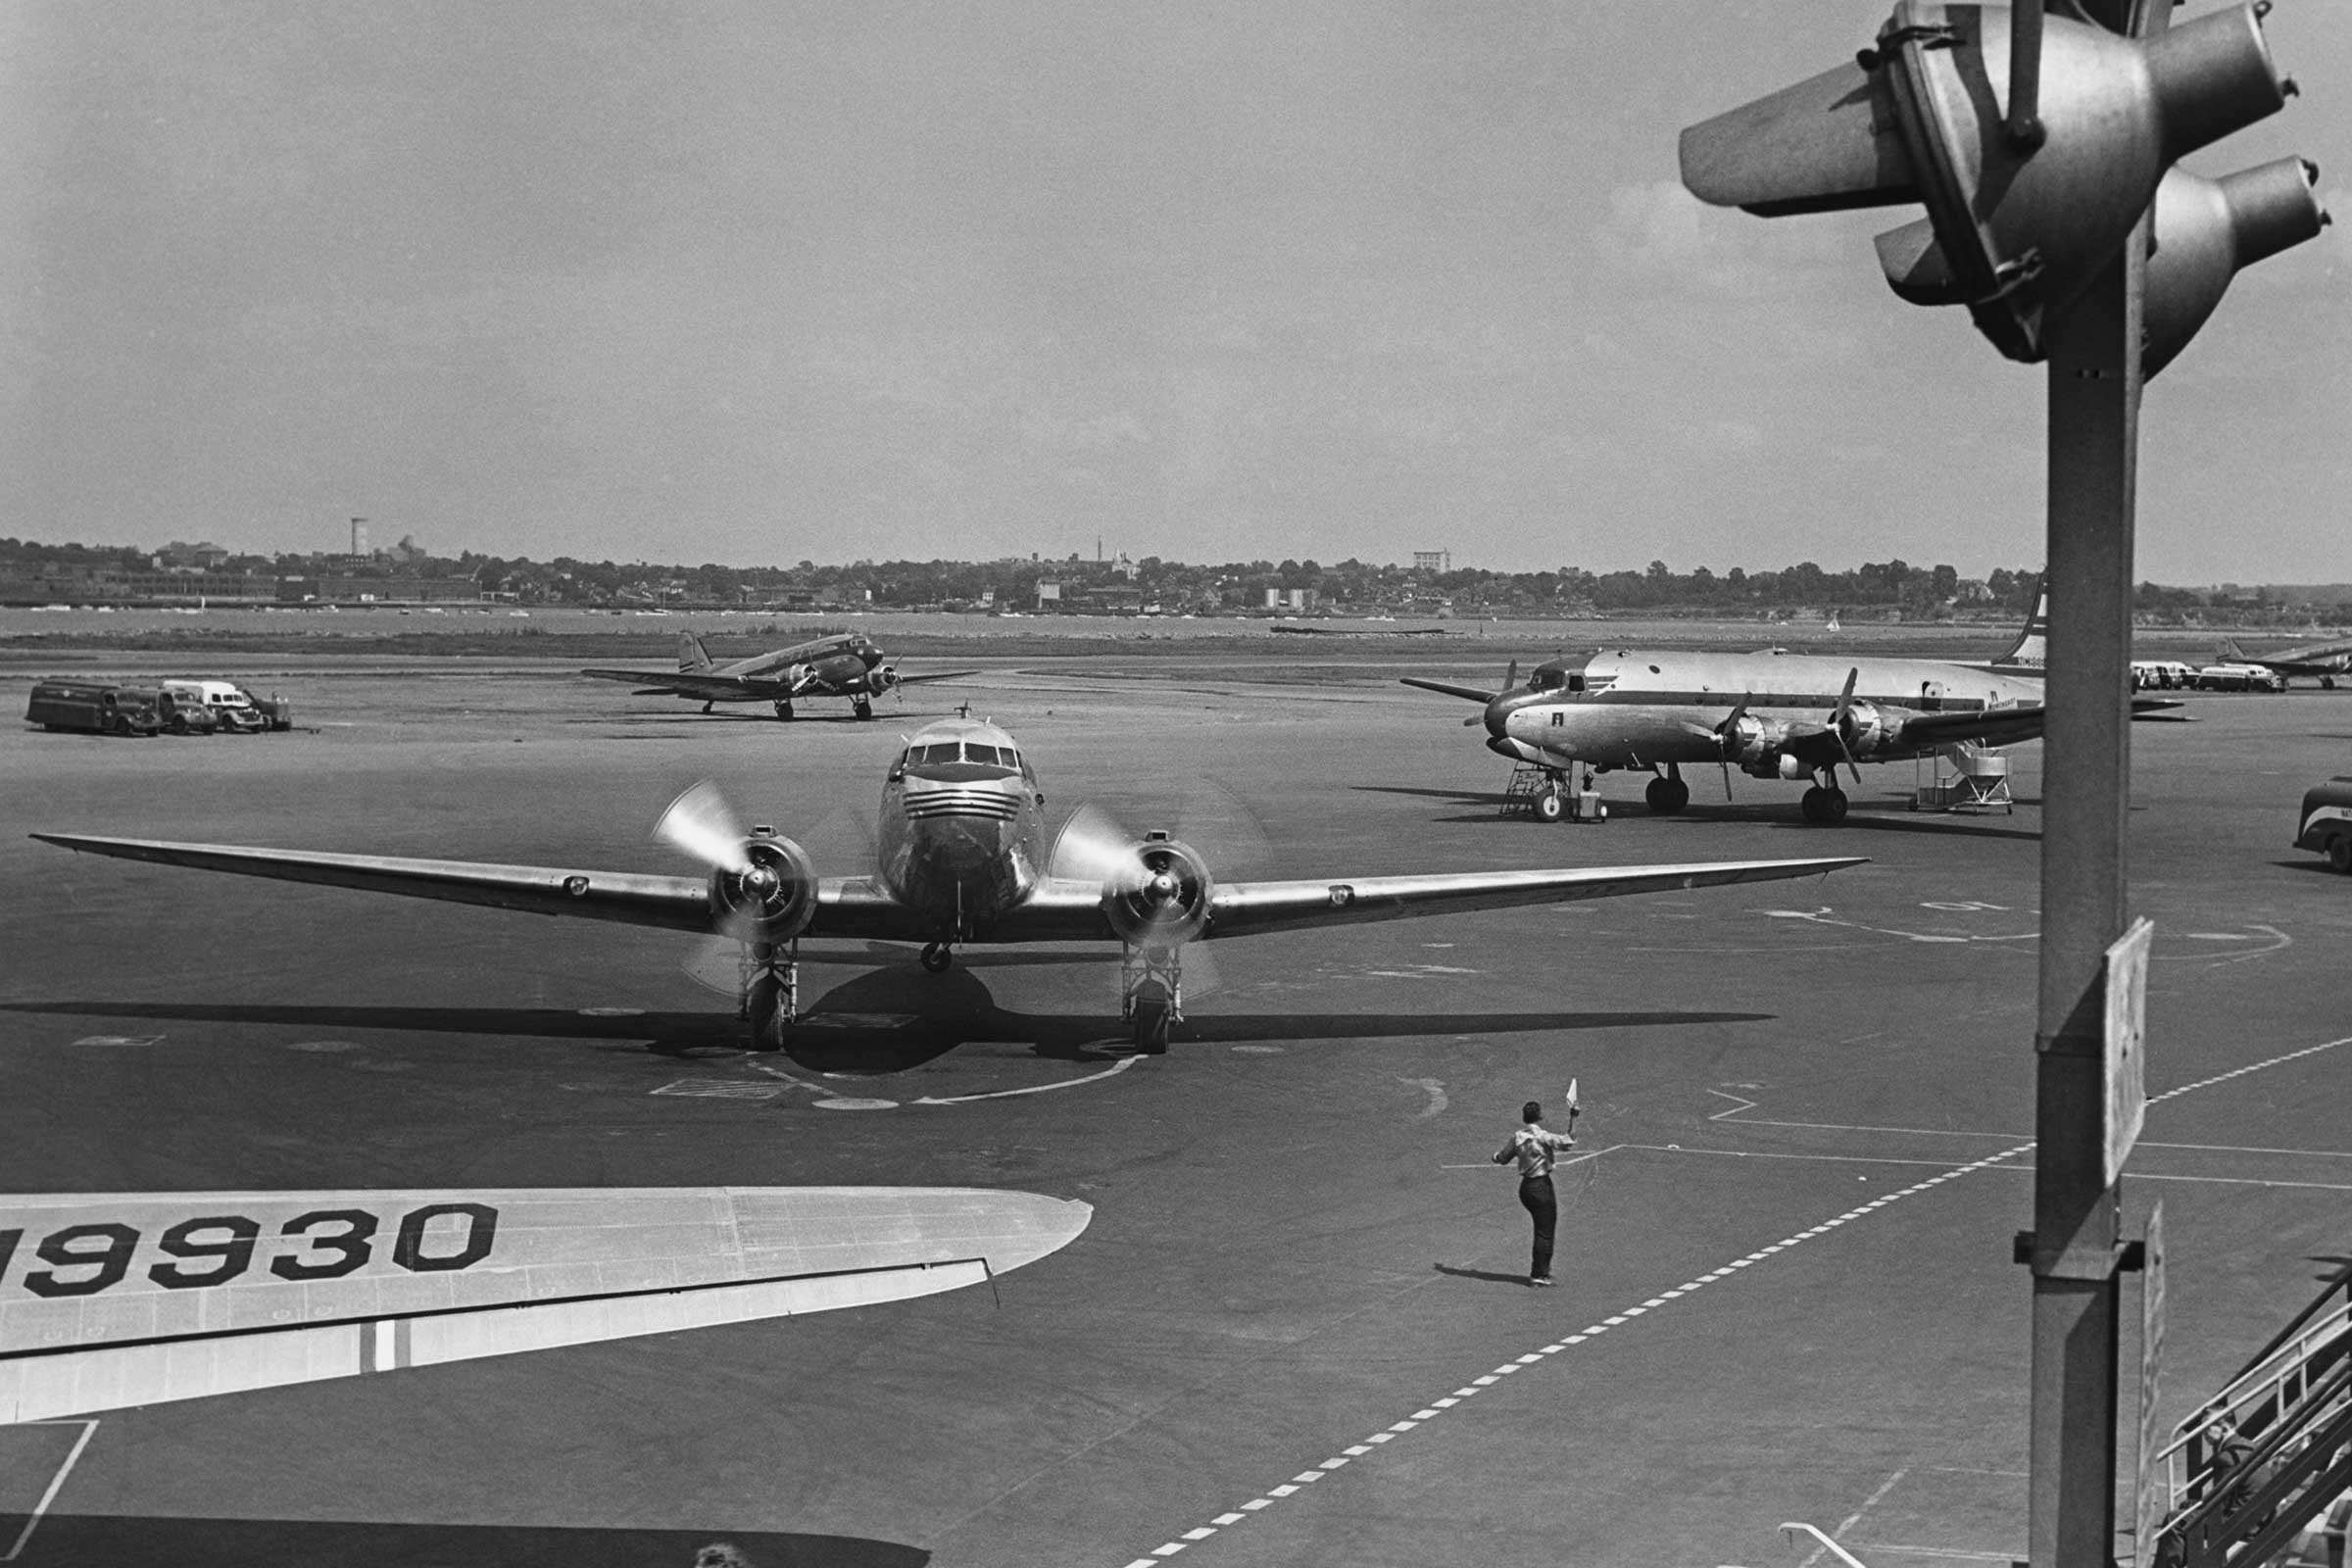 Planes on runway, (B&W), elevated view